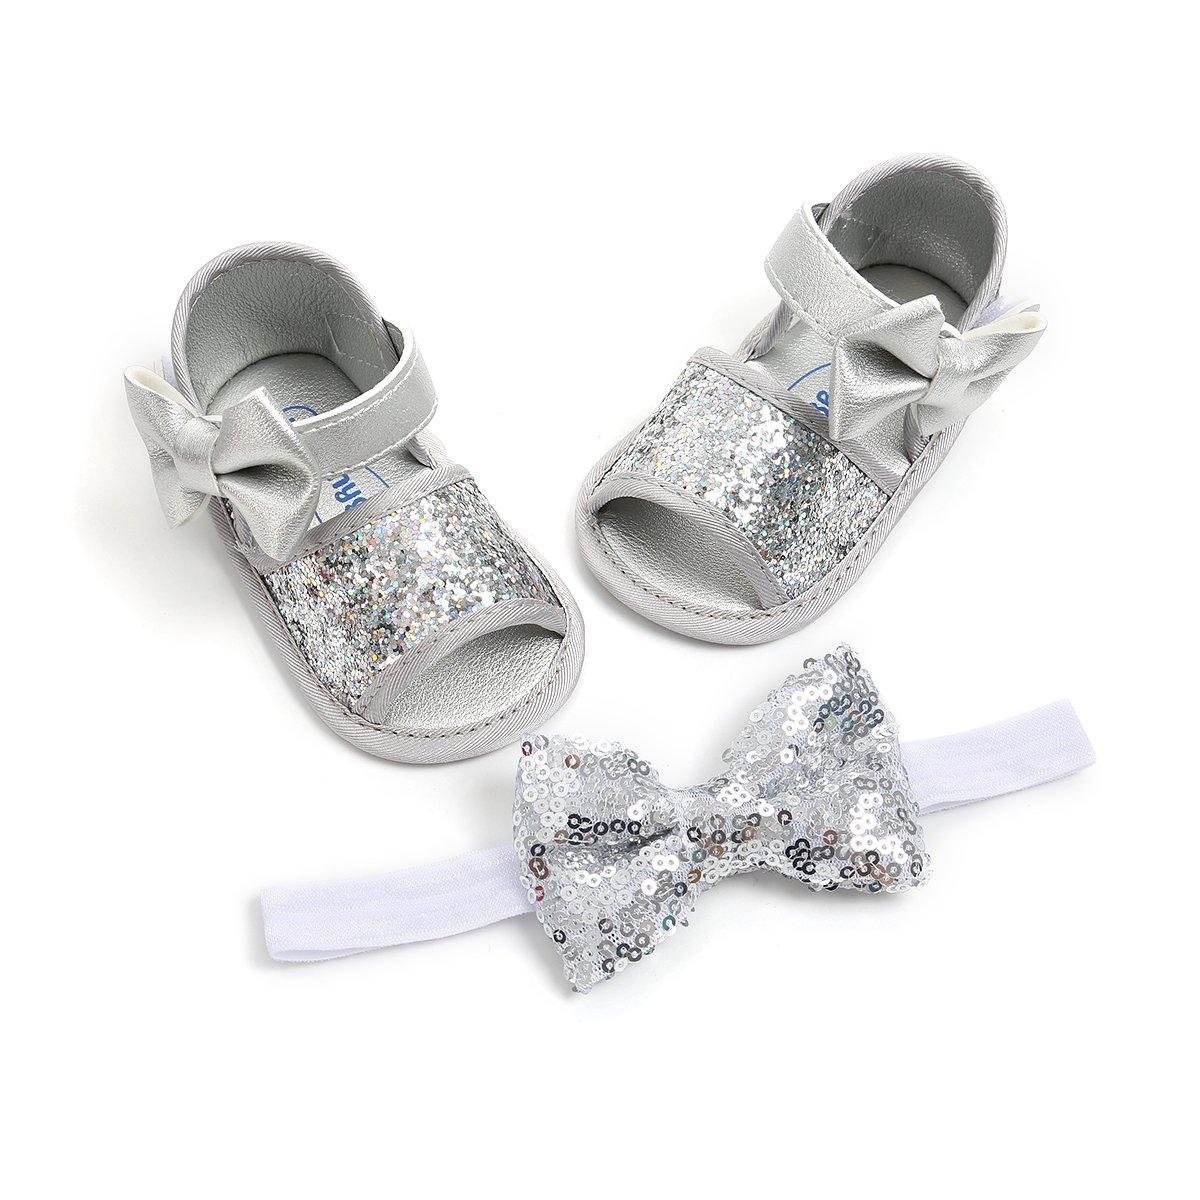 Isbasic Baby Girls Summer Sandals Pu Leather Rubber Sole Antiskid First Walking Shoes (0-6 Months, 1820-silver)